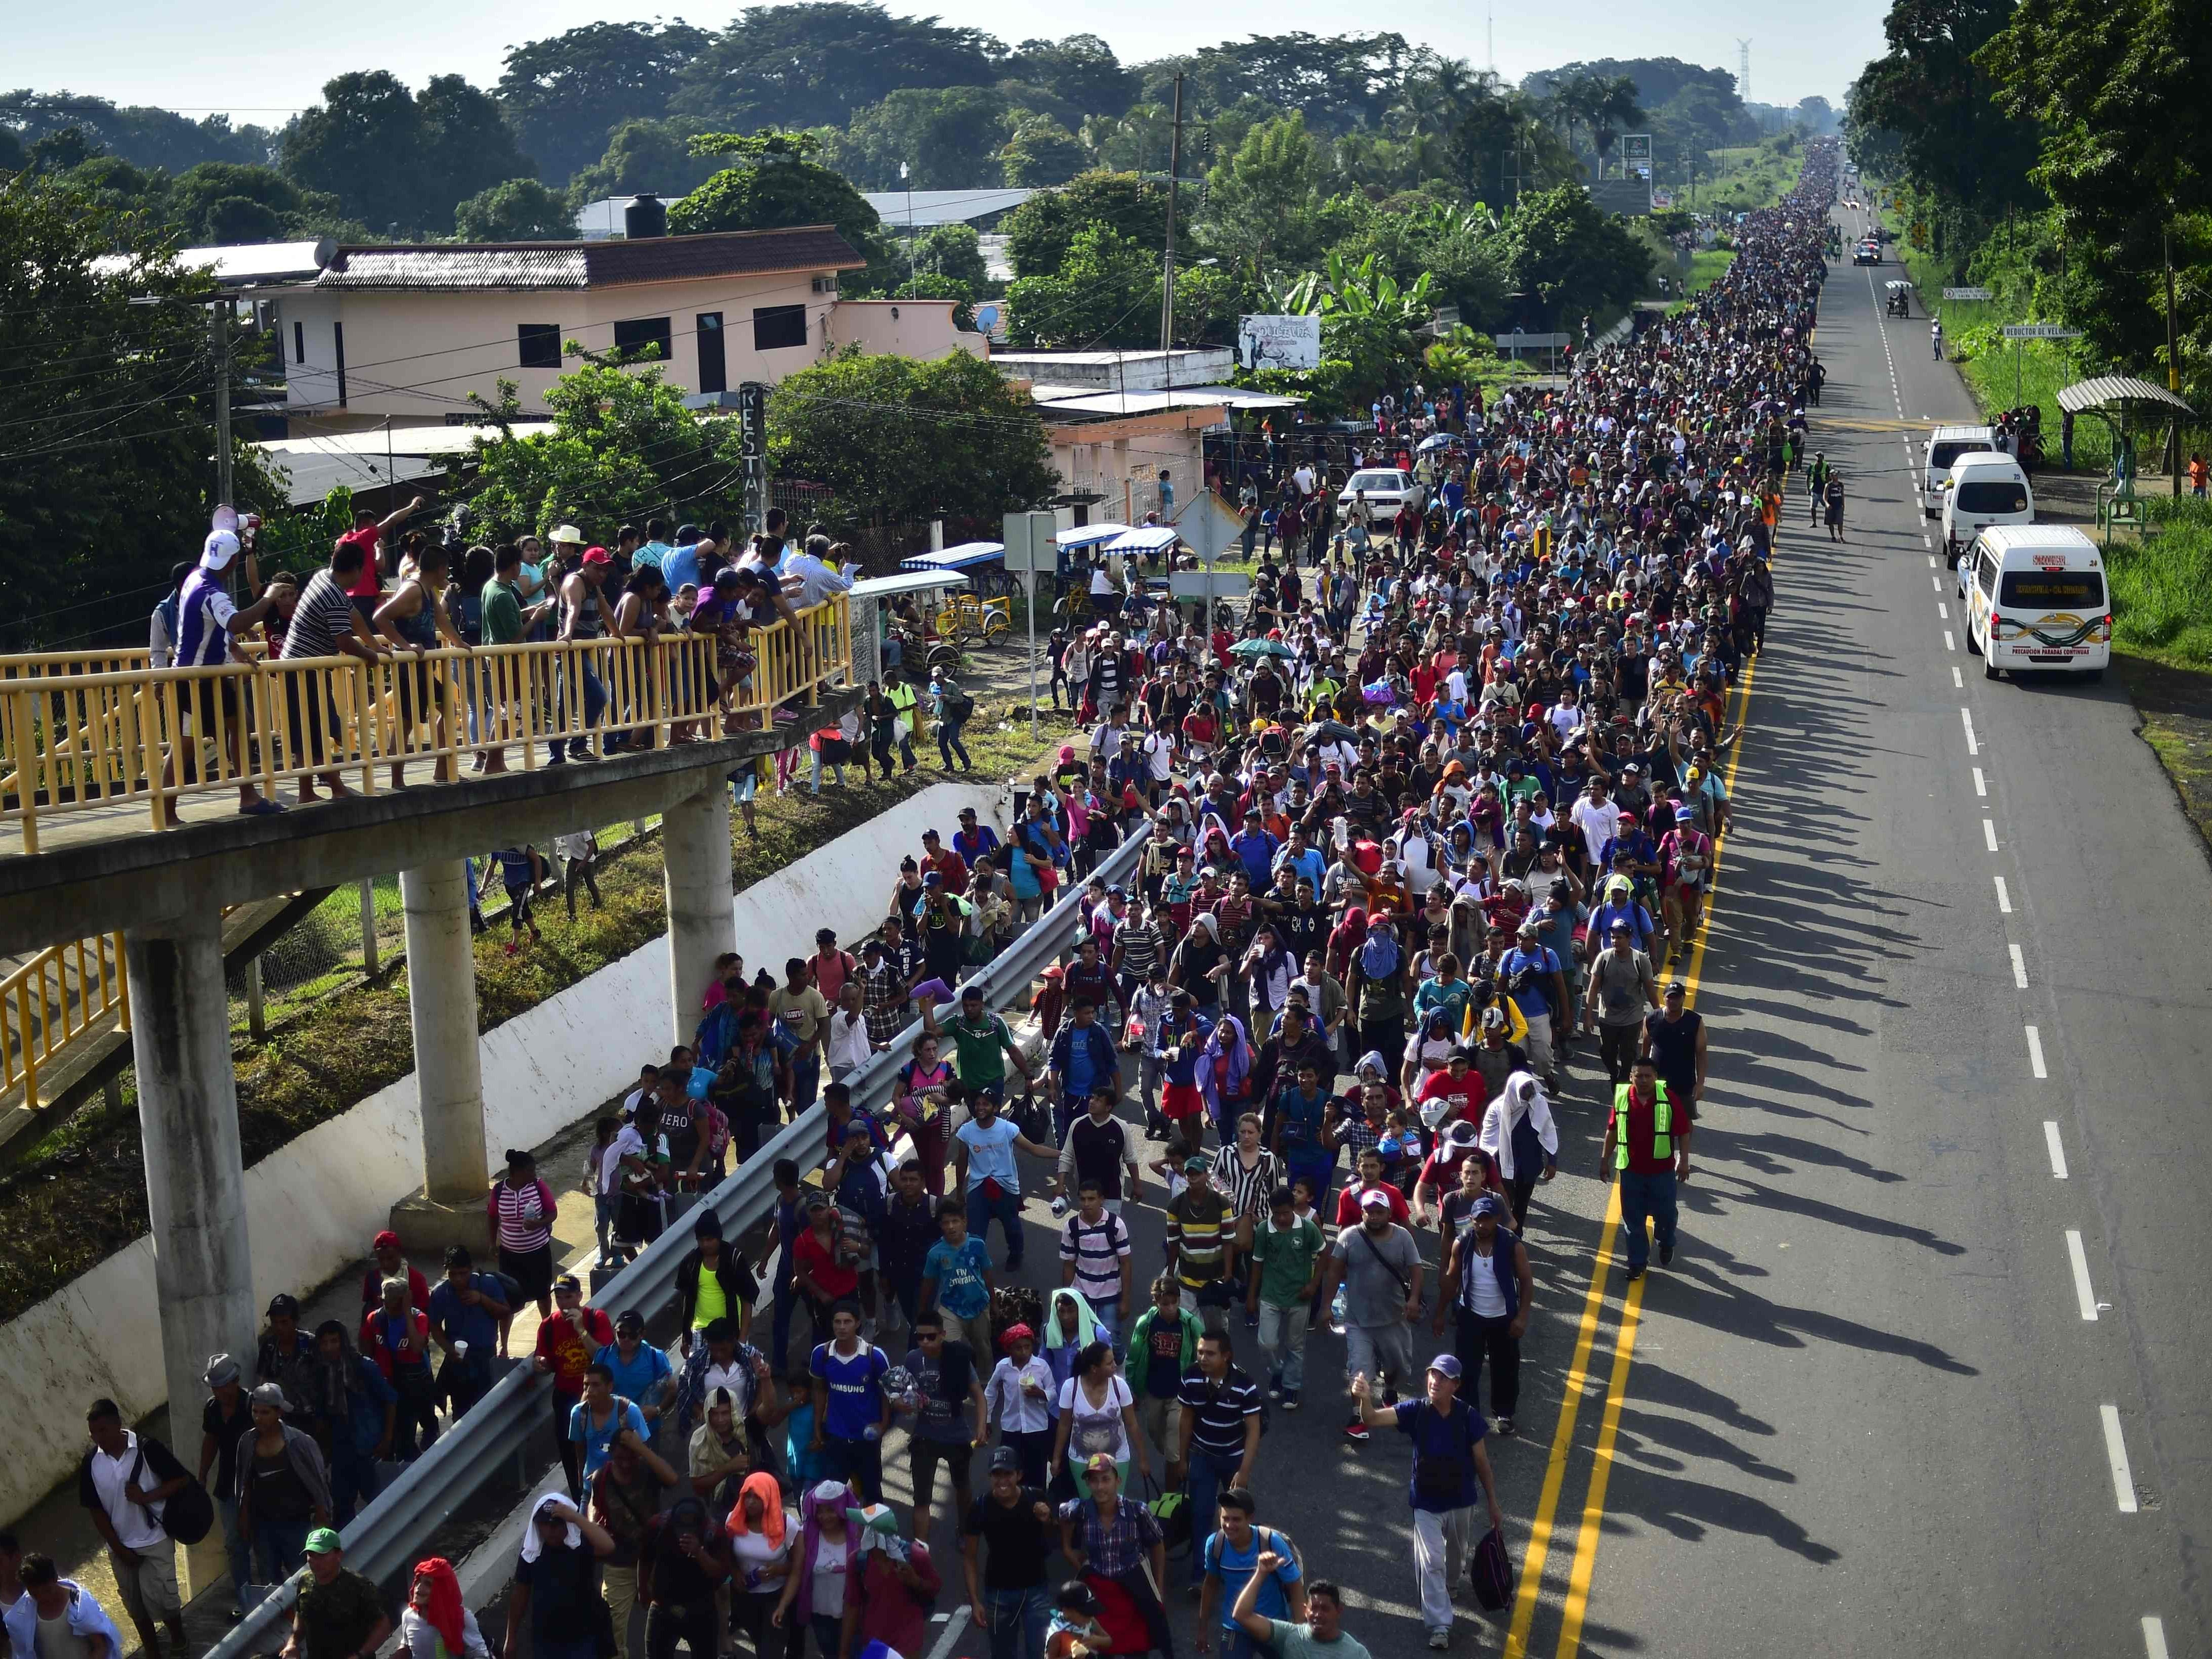 Honduran migrants take part in a caravan heading to the US on the road linking Ciudad Hidalgo and Tapachula, Chiapas state, Mexico, Oct. 21, 2018.Thousands of Honduran migrants resumed their march toward the United States on Sunday from the southern Mexican city of Ciudad Hidalgo, according to news reports.